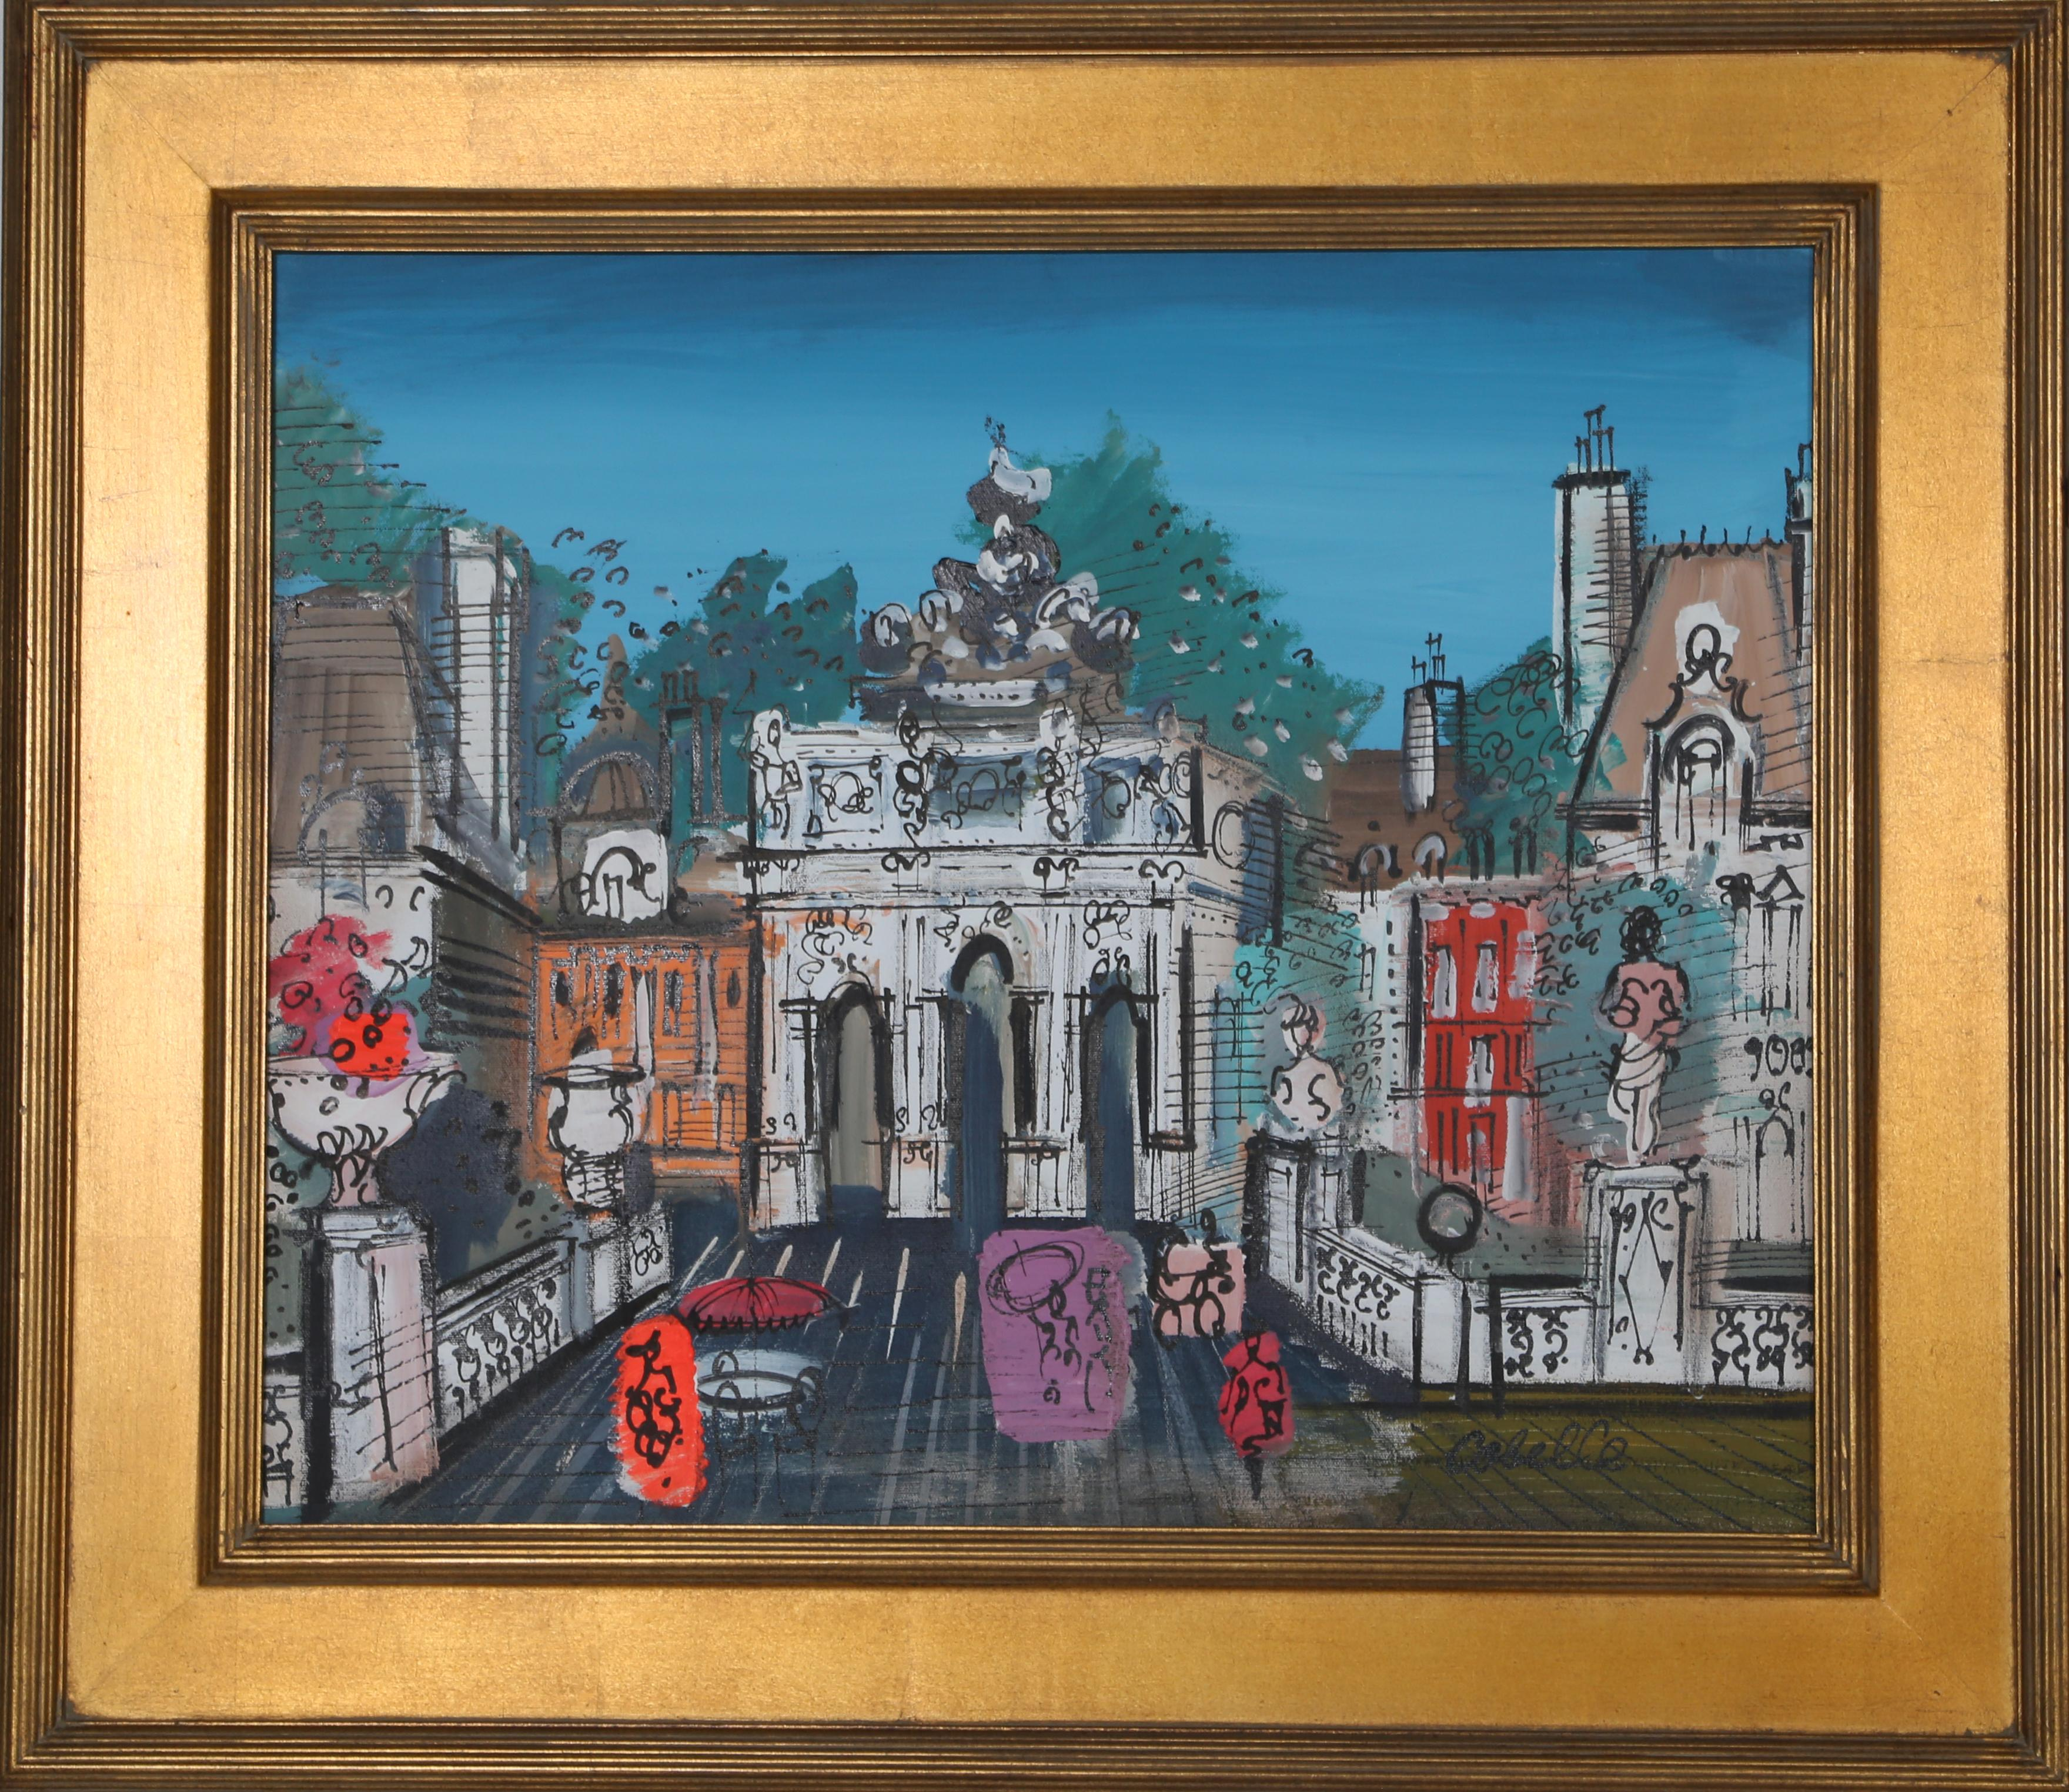 Town, Framed Acrylic Painting by Charles Cobelle